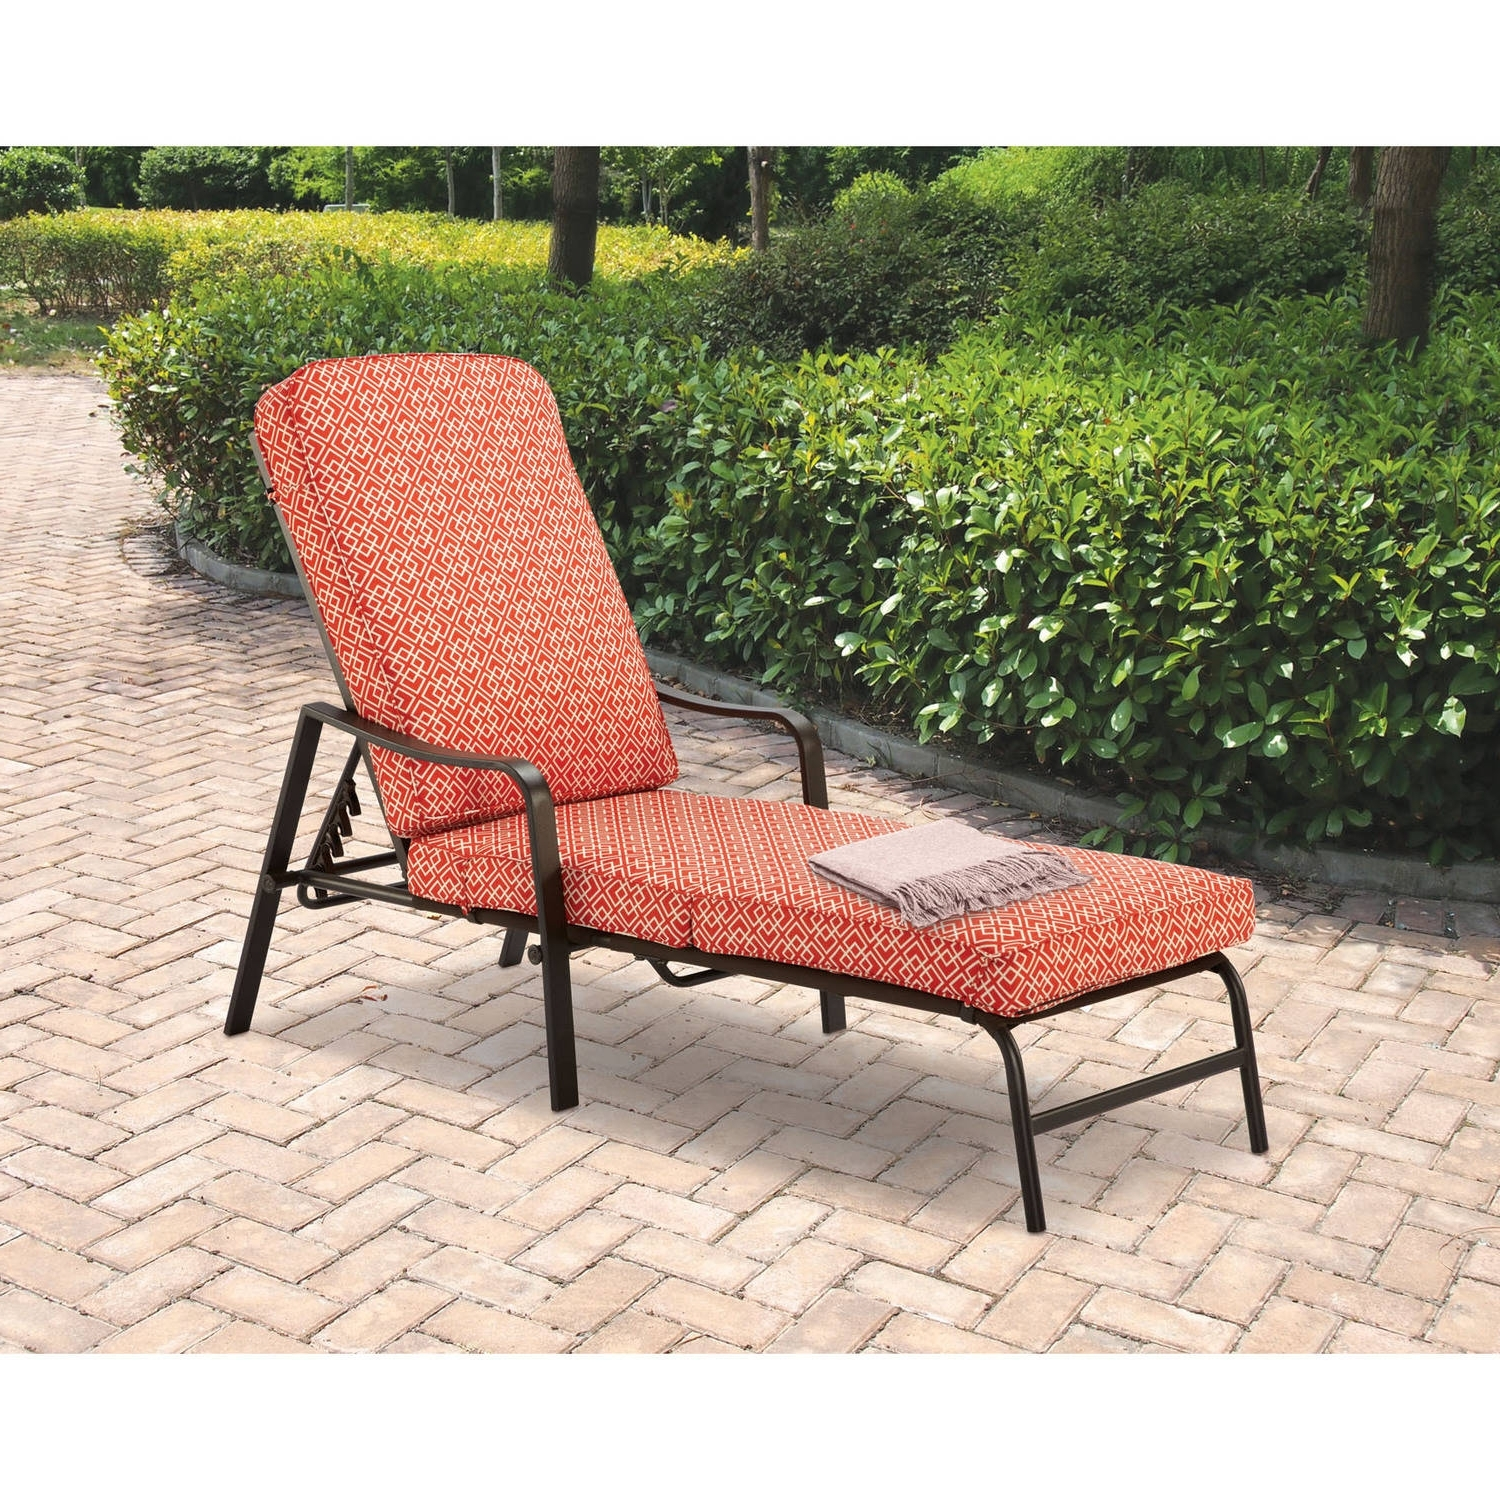 Most Recently Released Mainstays Outdoor Chaise Lounge, Orange Geo Pattern – Walmart Regarding Chaise Lounge Chair Cushions (View 10 of 15)